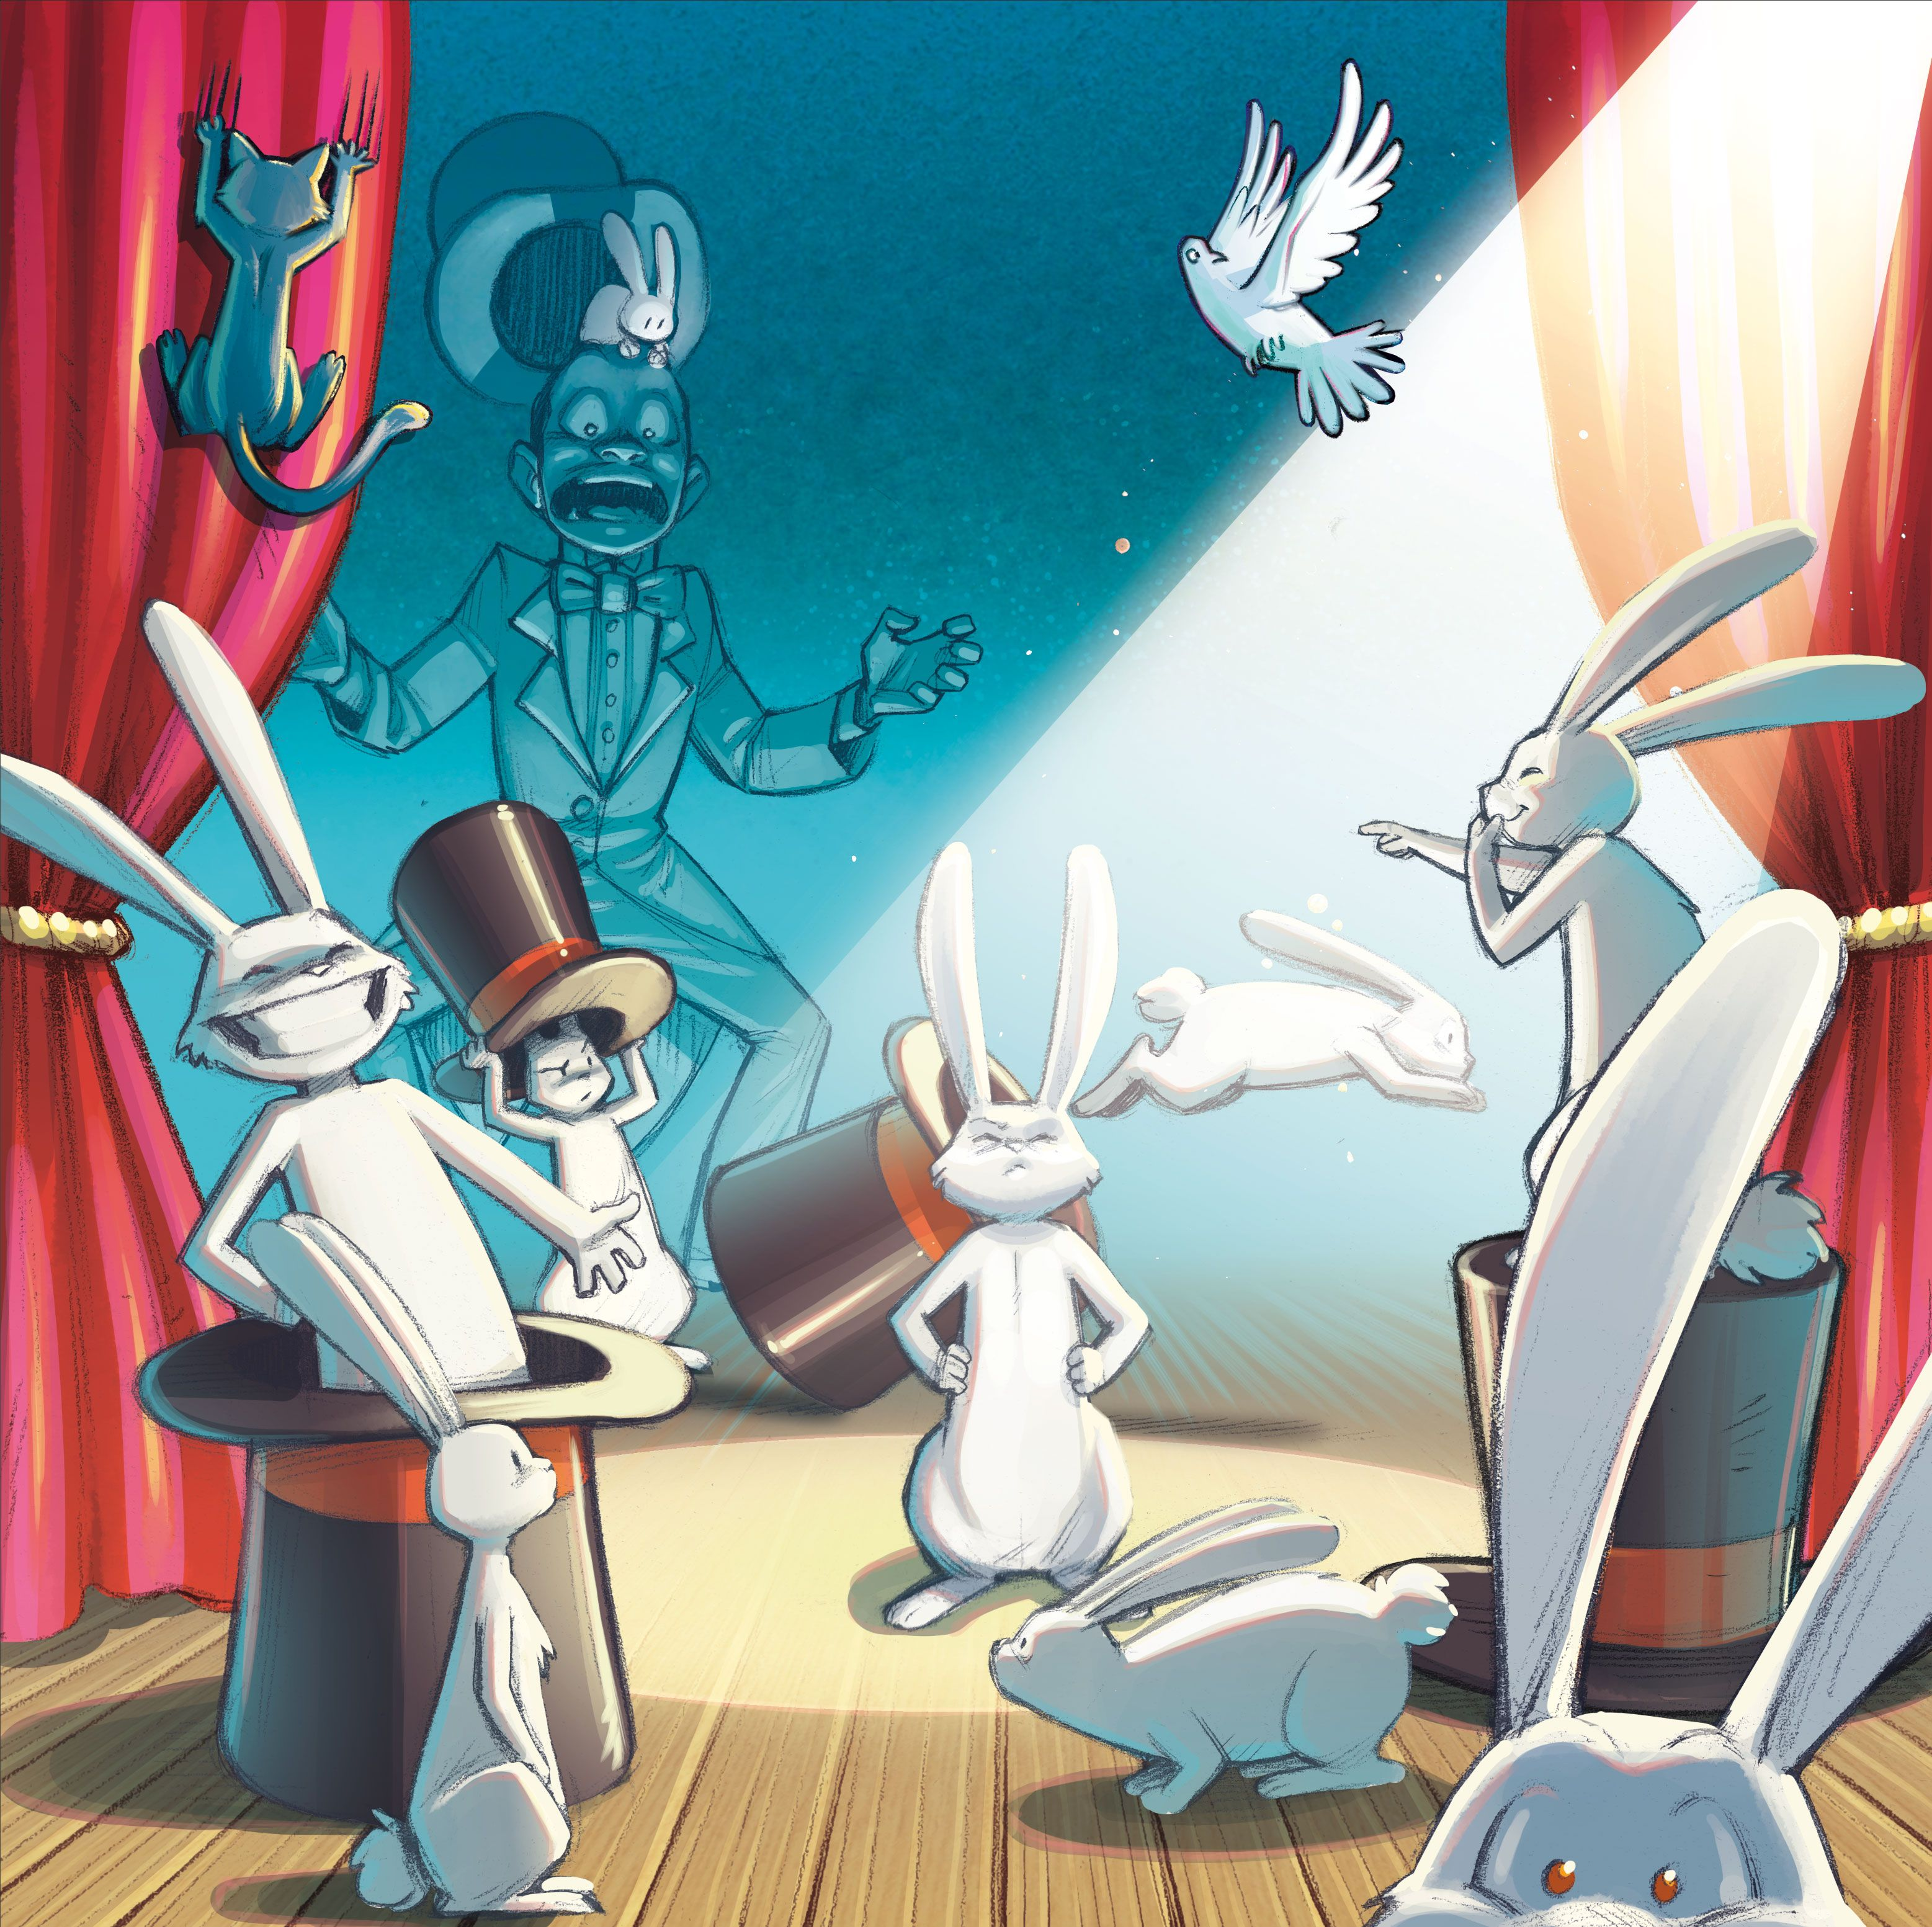 Magic Rabbit, visuel © Lumberjacks Studio